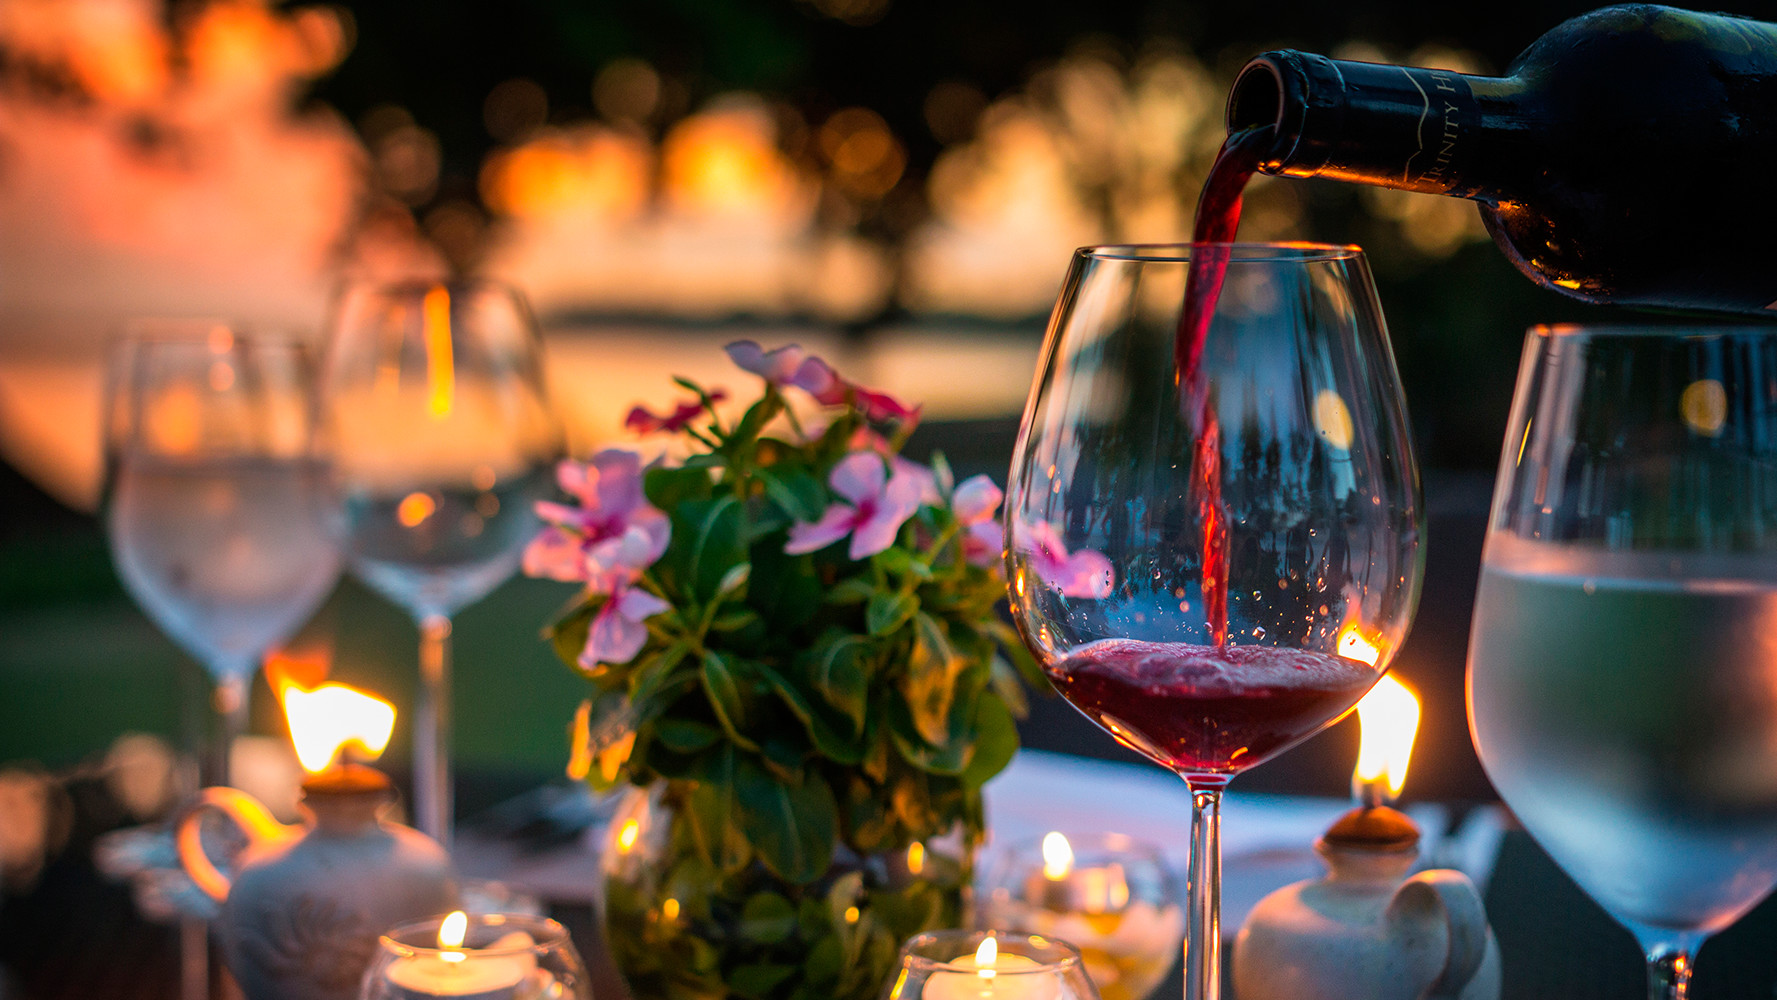 red wine poured into wine glass on a dinner table